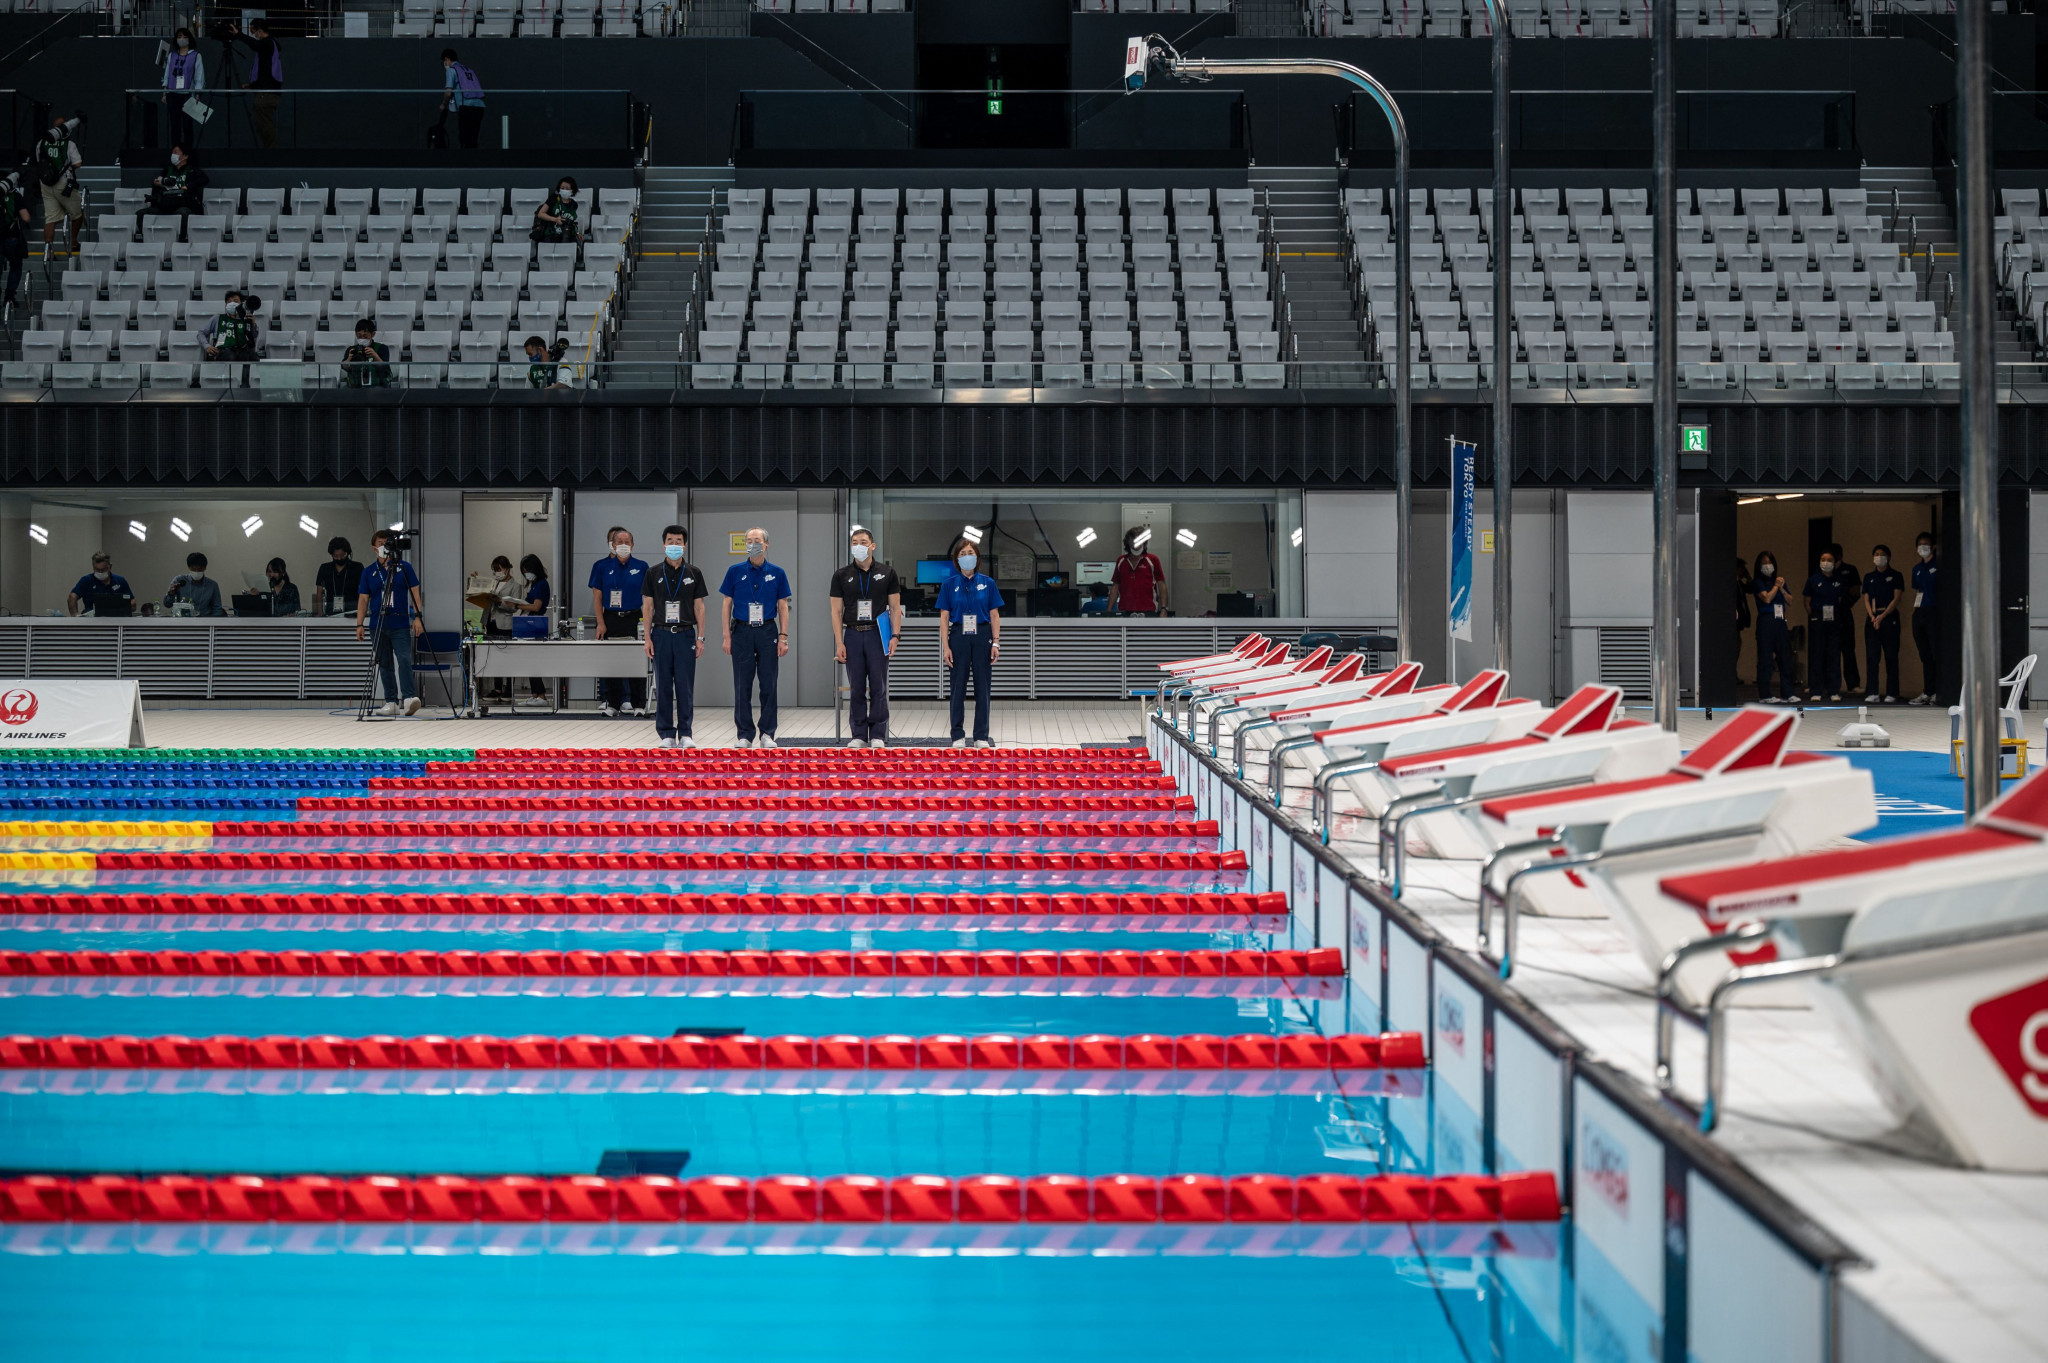 The Tokyo 2020 Olympics Games are due to open on July 23, with the swimming competition set to start a day later ©Getty Images